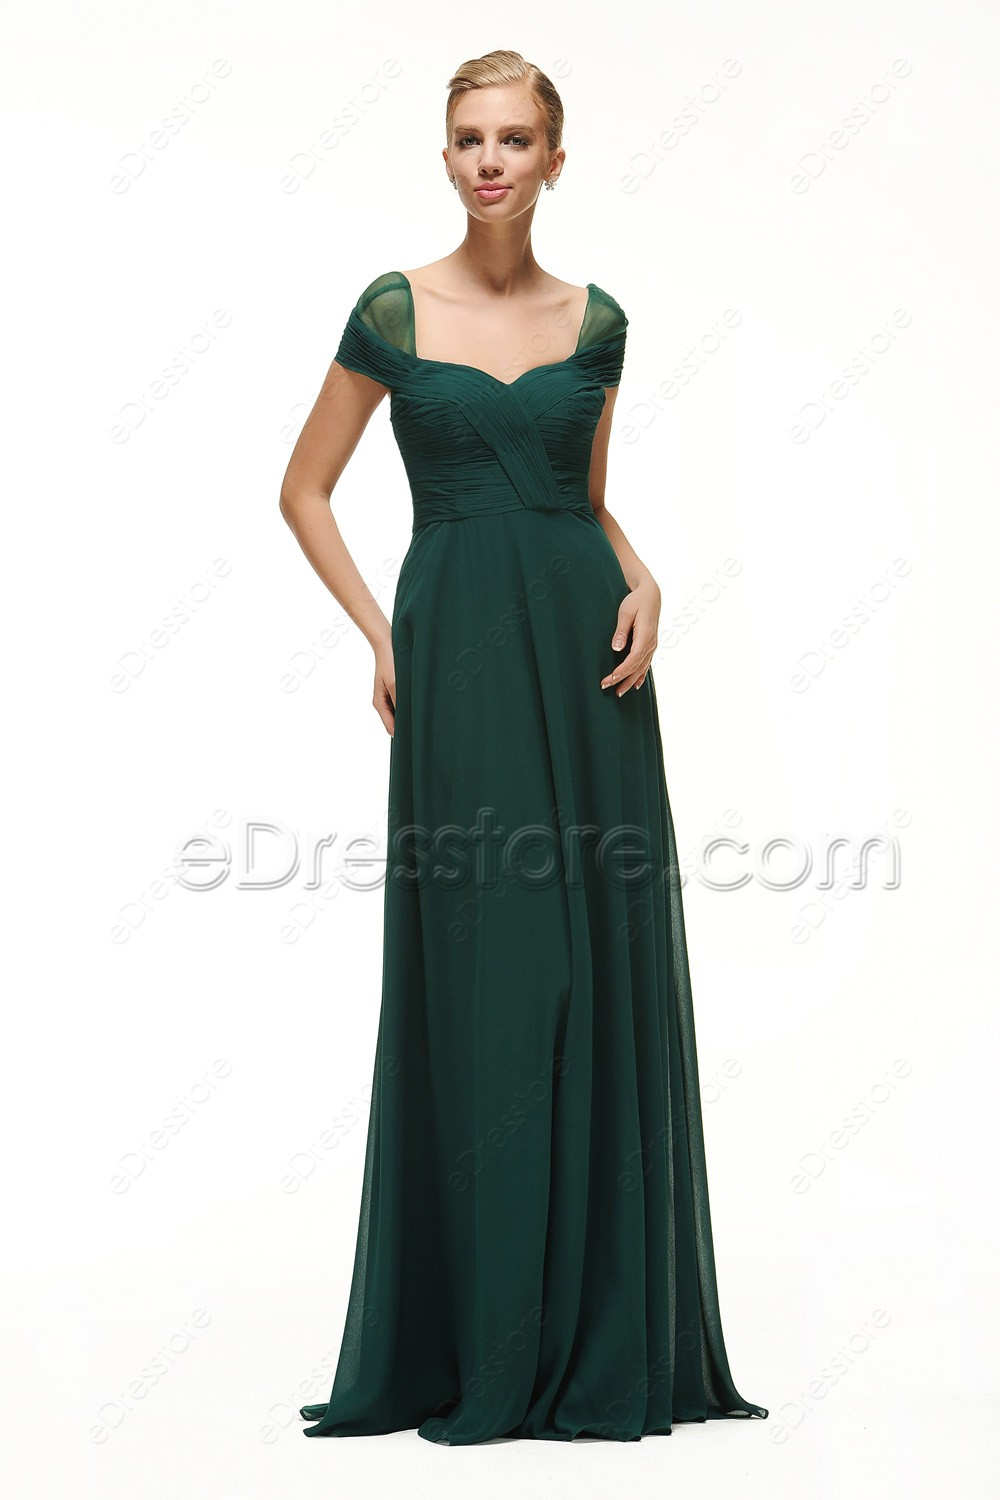 Cap sleeves forest green bridesmaid dresses long this is a made to order item in order to get a better fit lease take your measurements around bust waist and hip and choose your size from our size ombrellifo Image collections